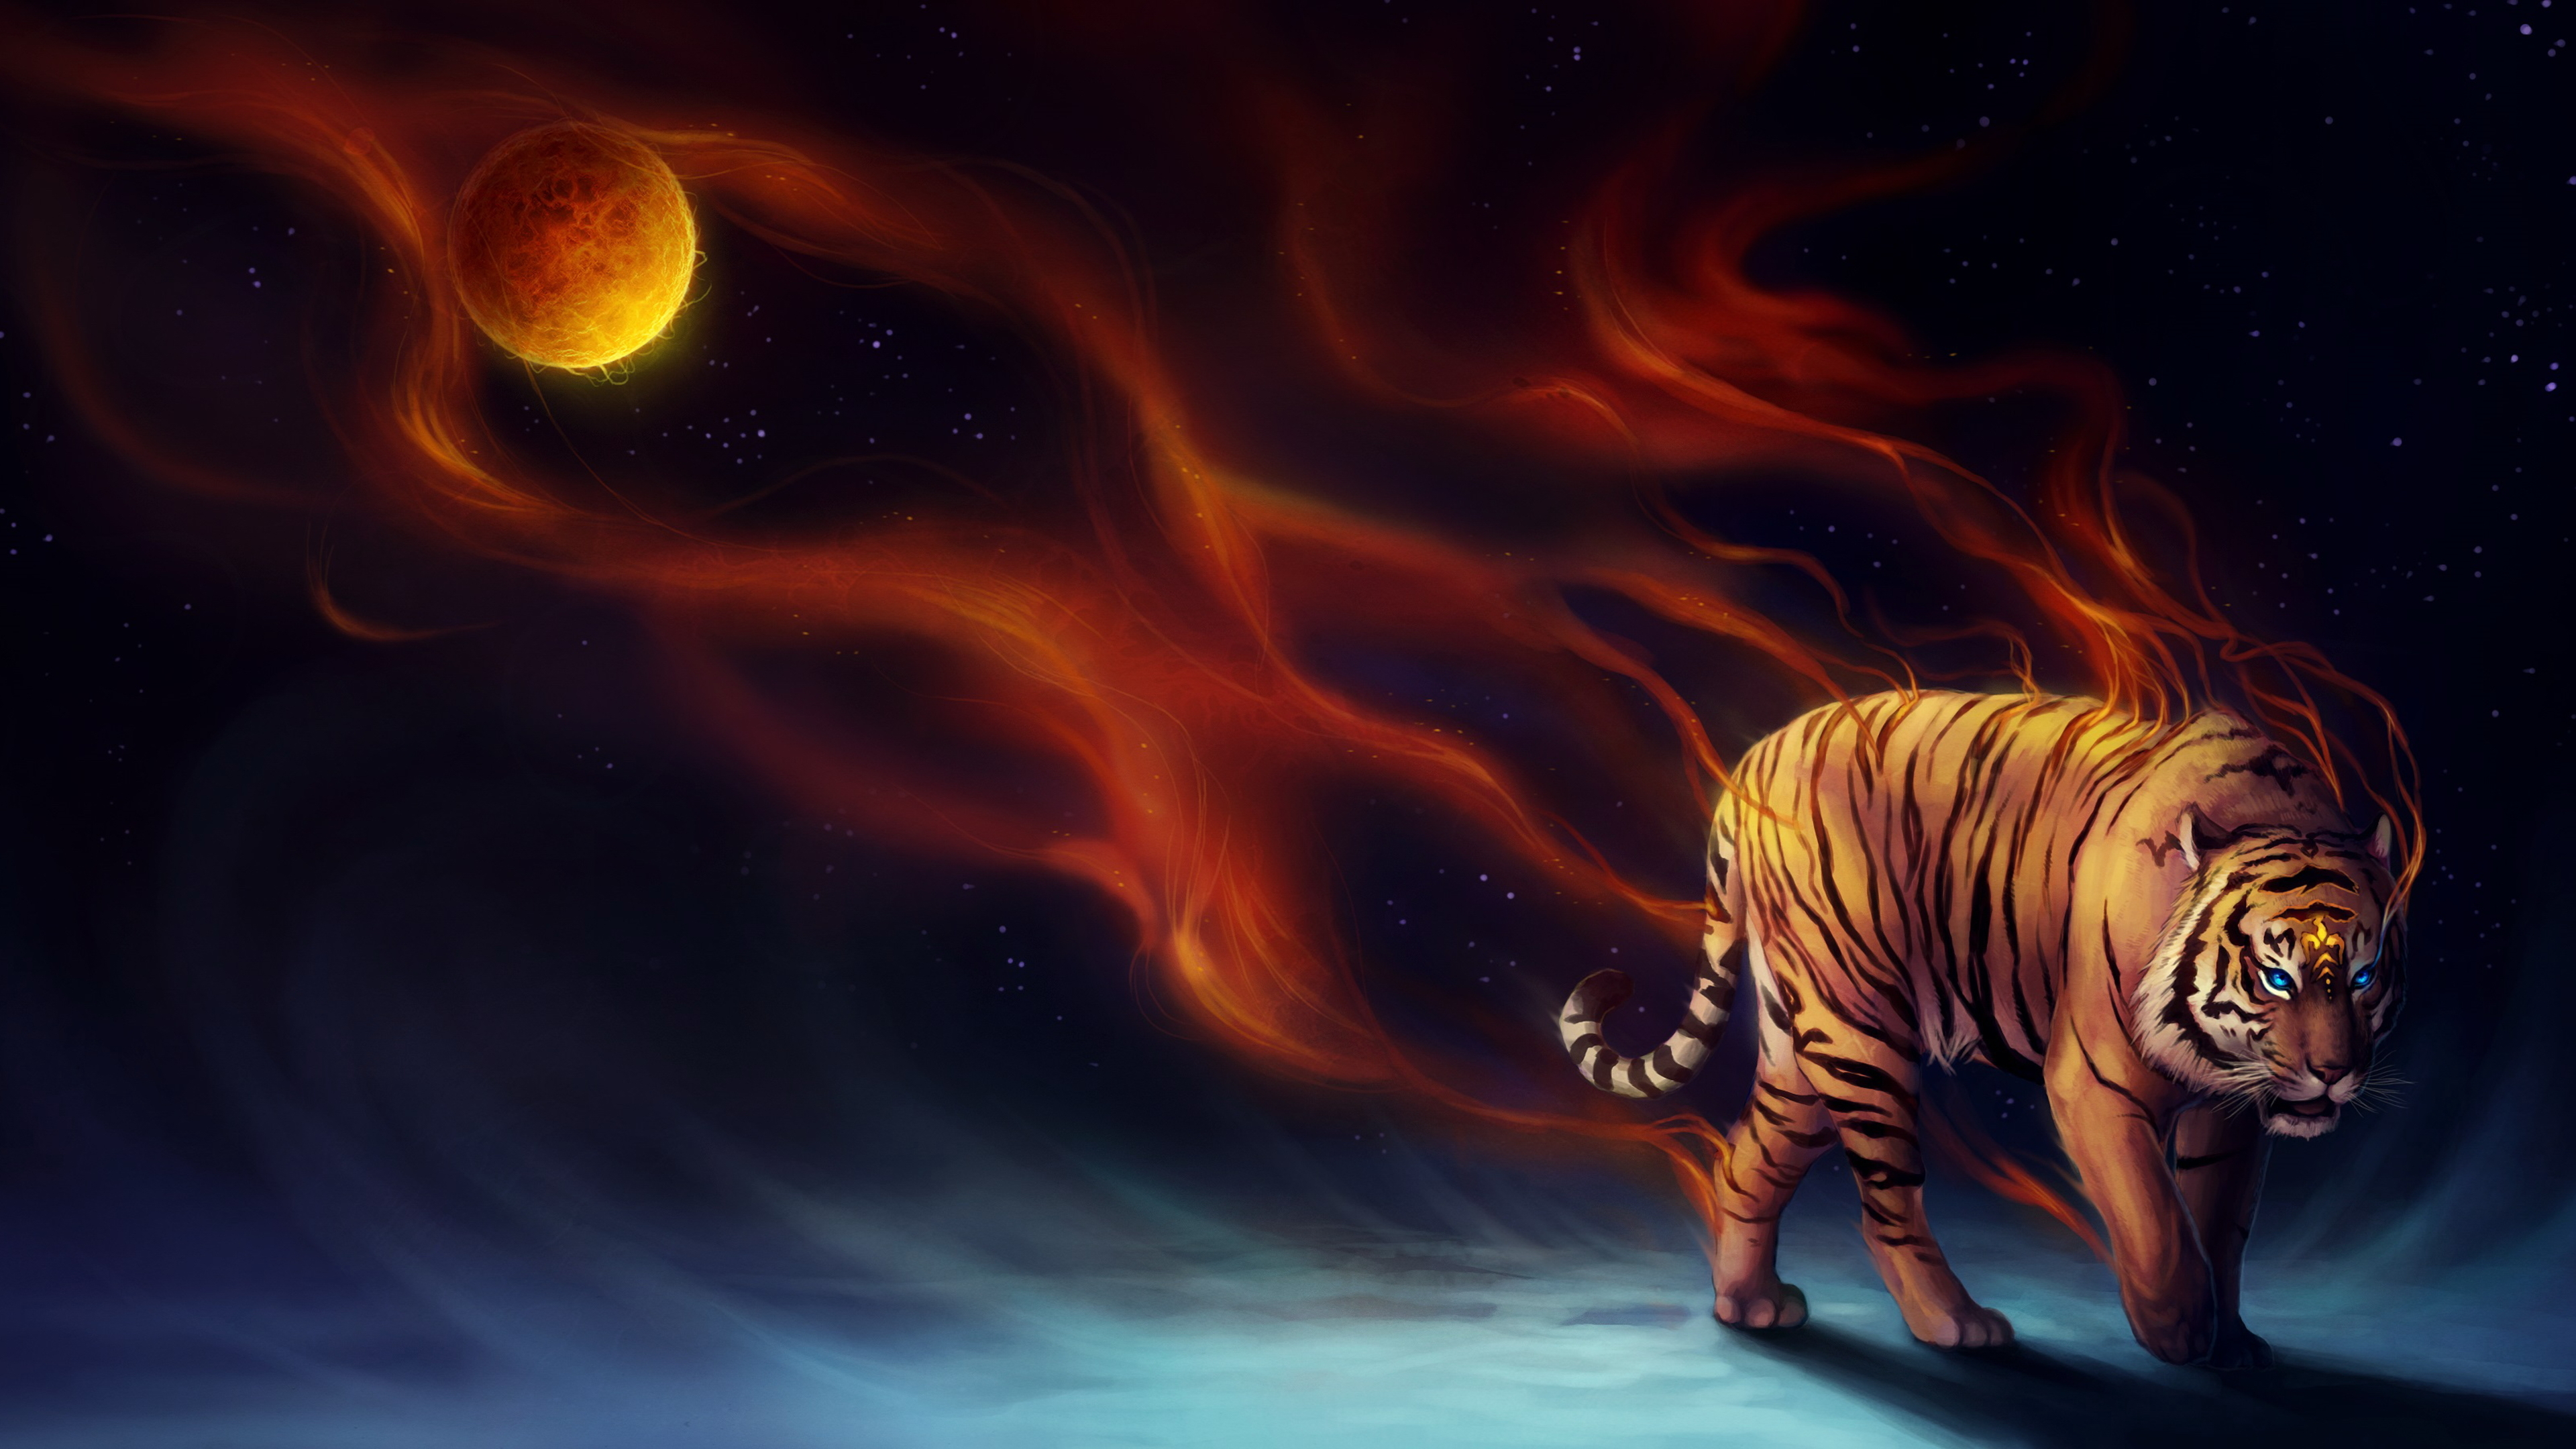 Wallpaper 4k Tiger Fantasy Magical Flame 4k 4k Wallpapers Animals